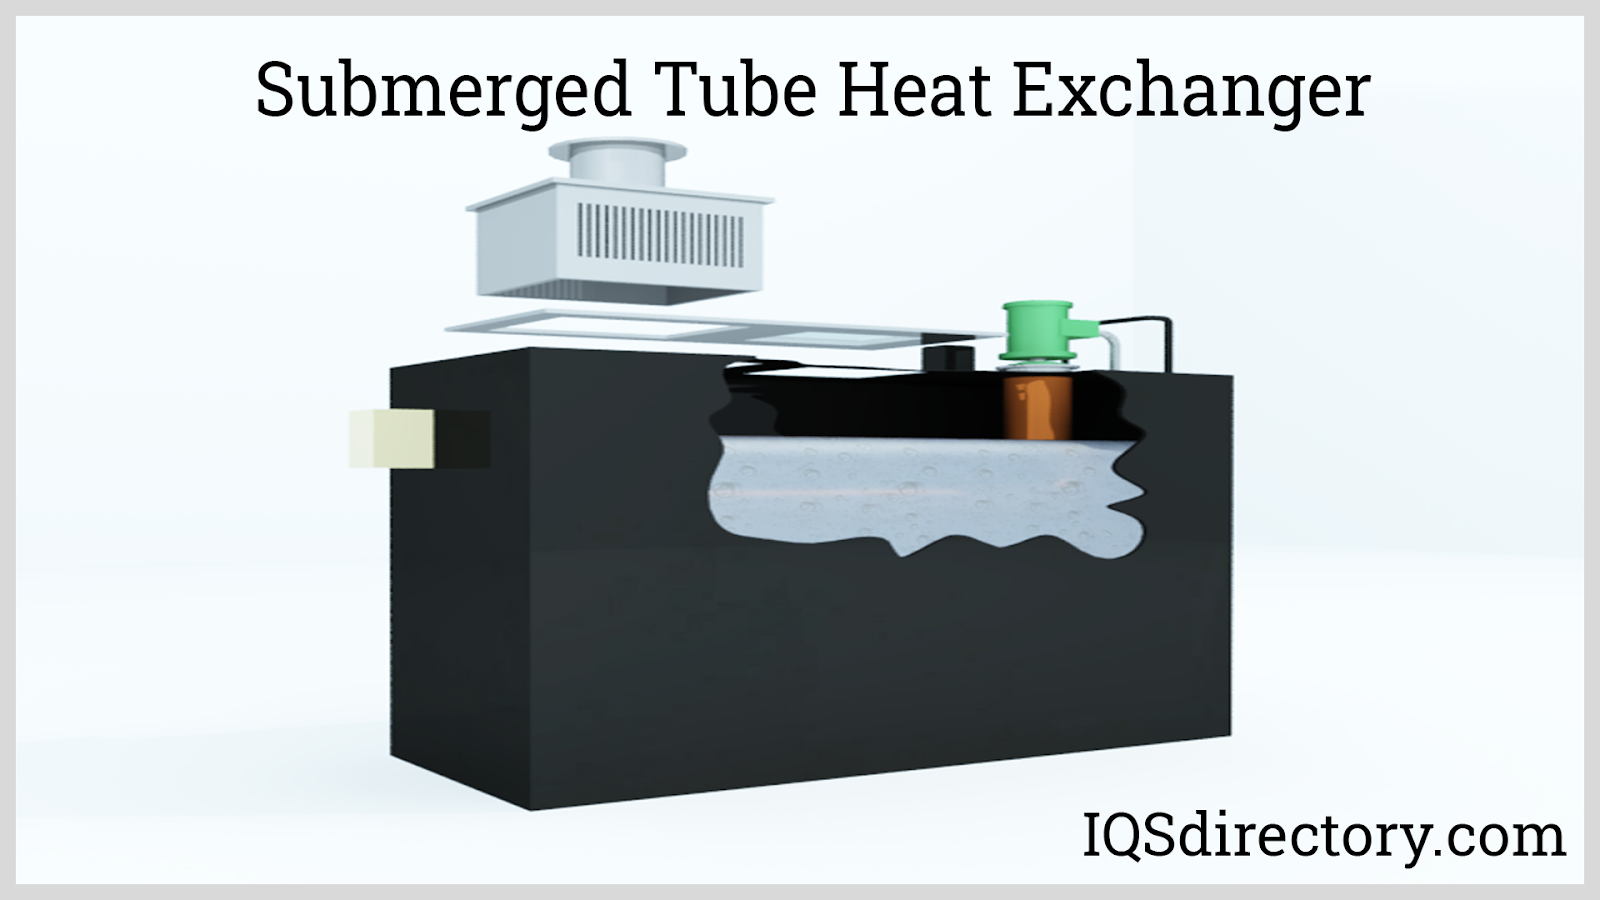 Submerged Tube Heat Exchanger